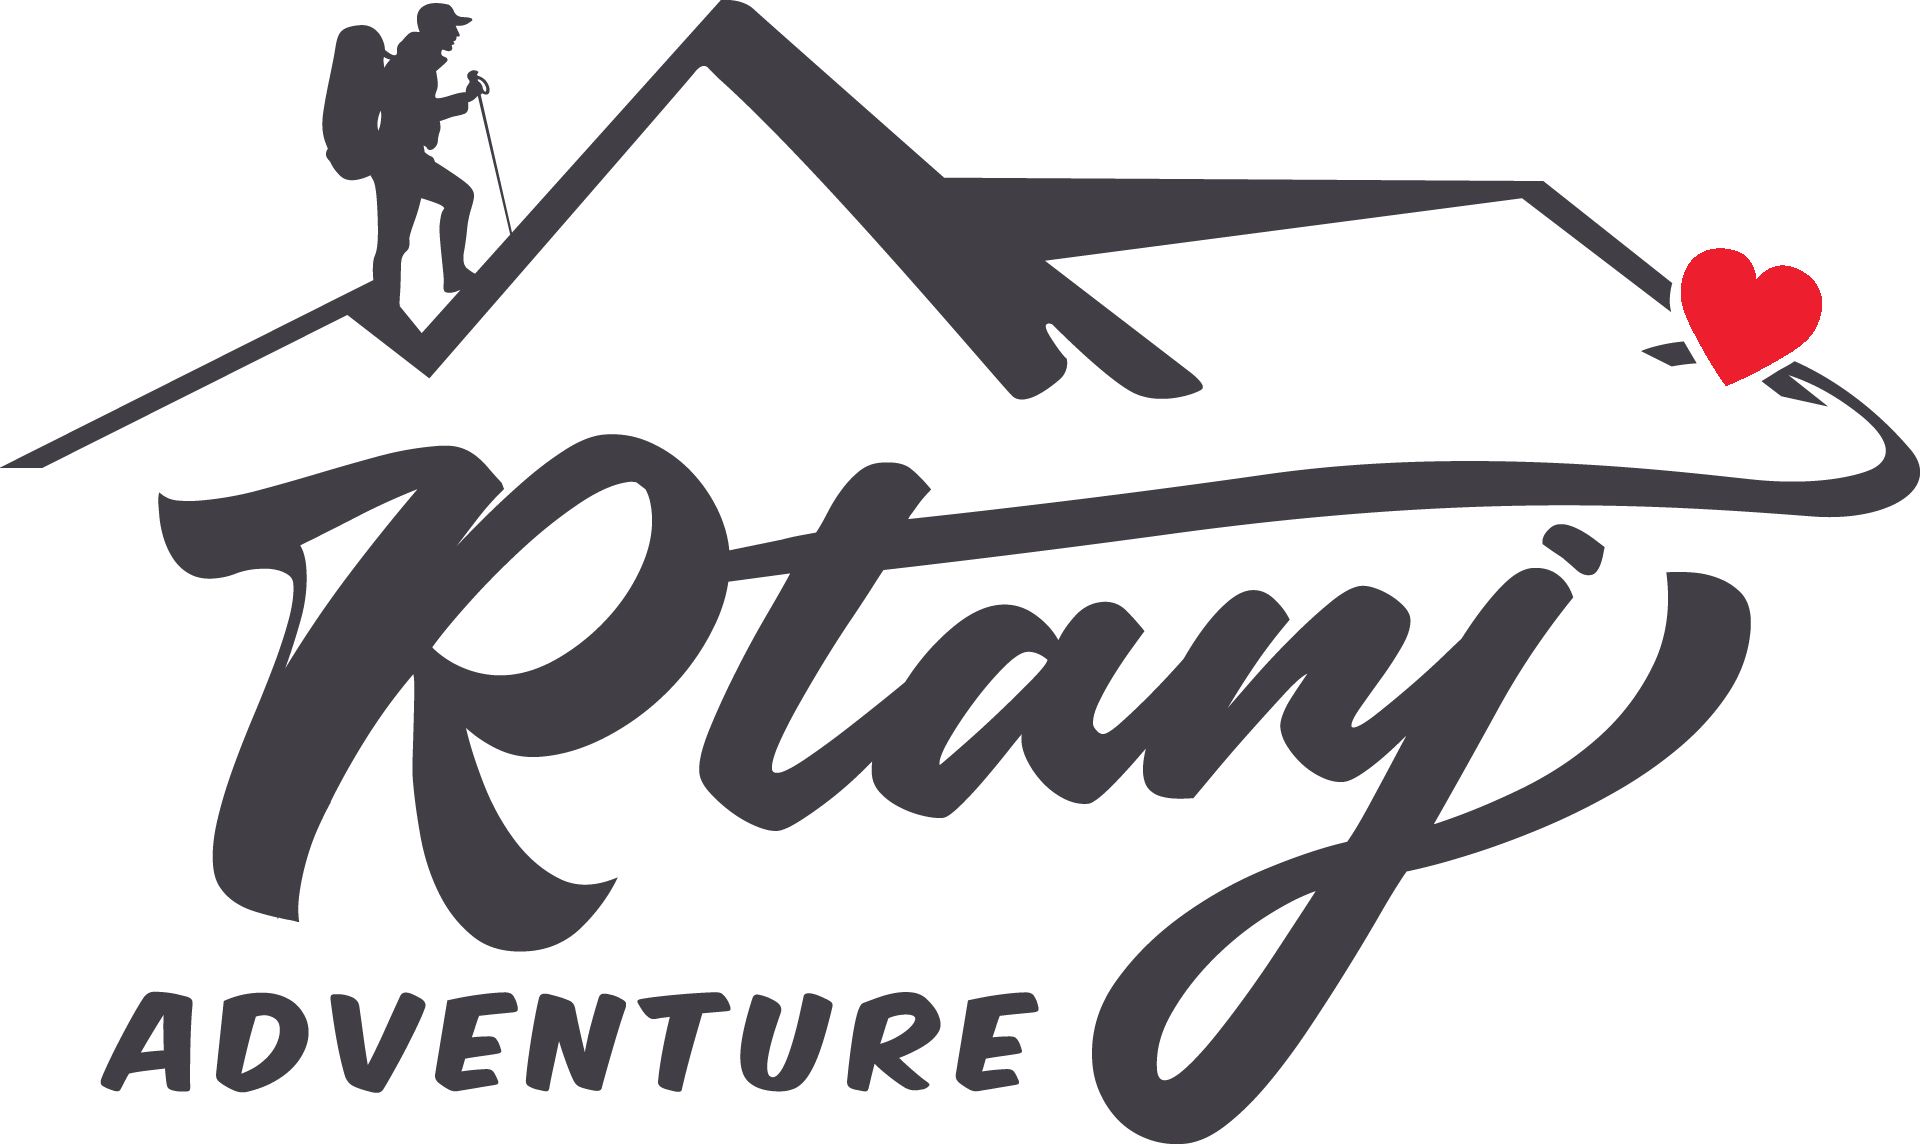 Rtanj Adventure